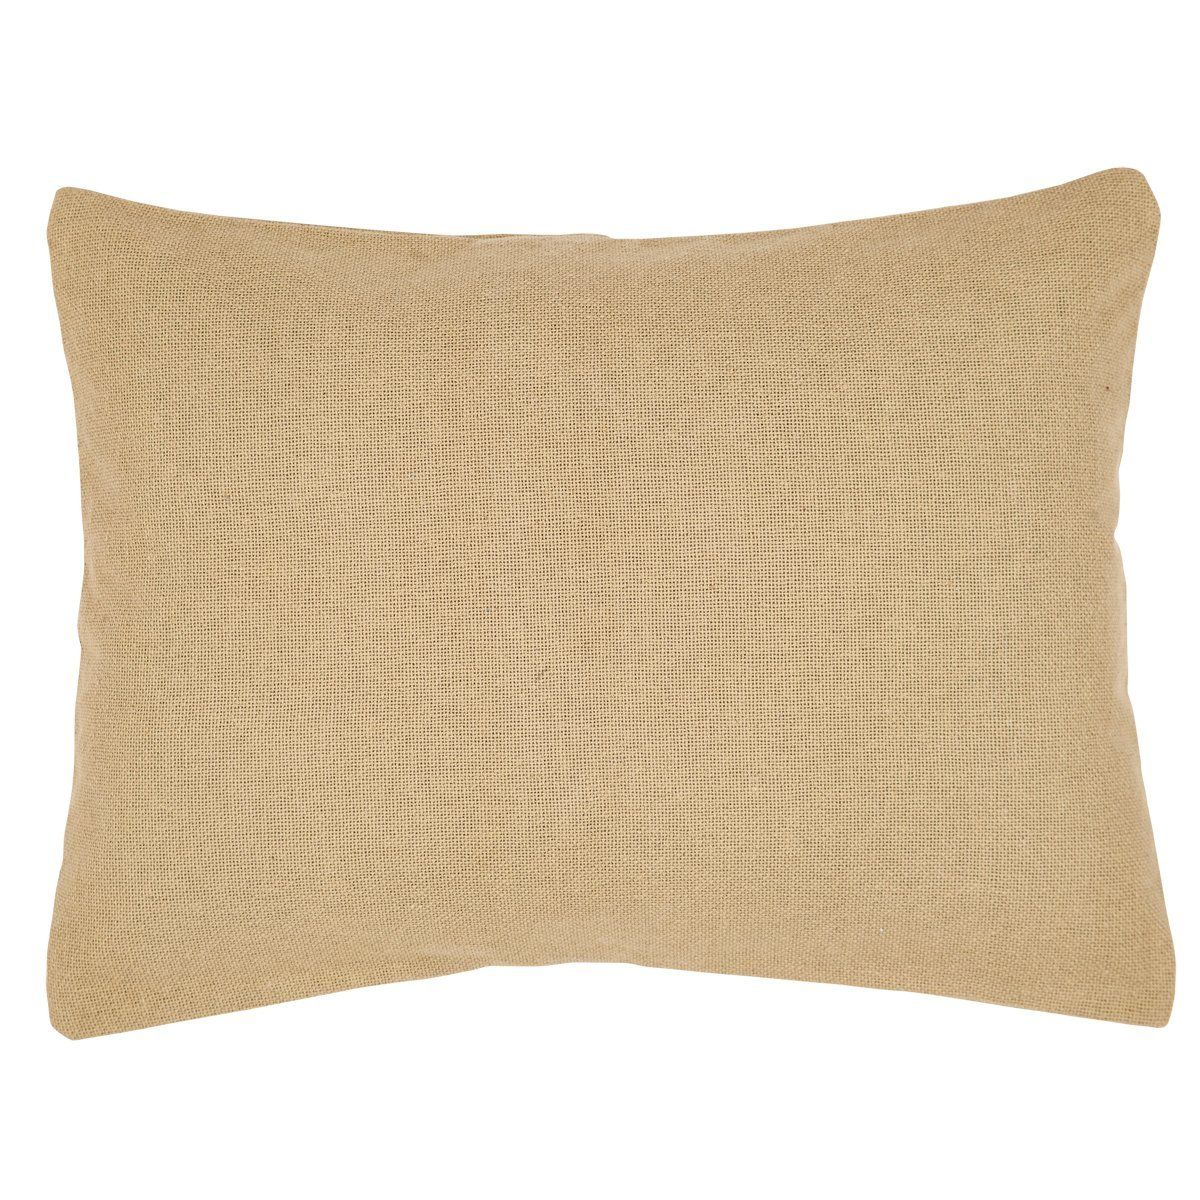 Amazon.com: VHC Brands 17 Burlap Natural Standard Sham 17 x 17 ...